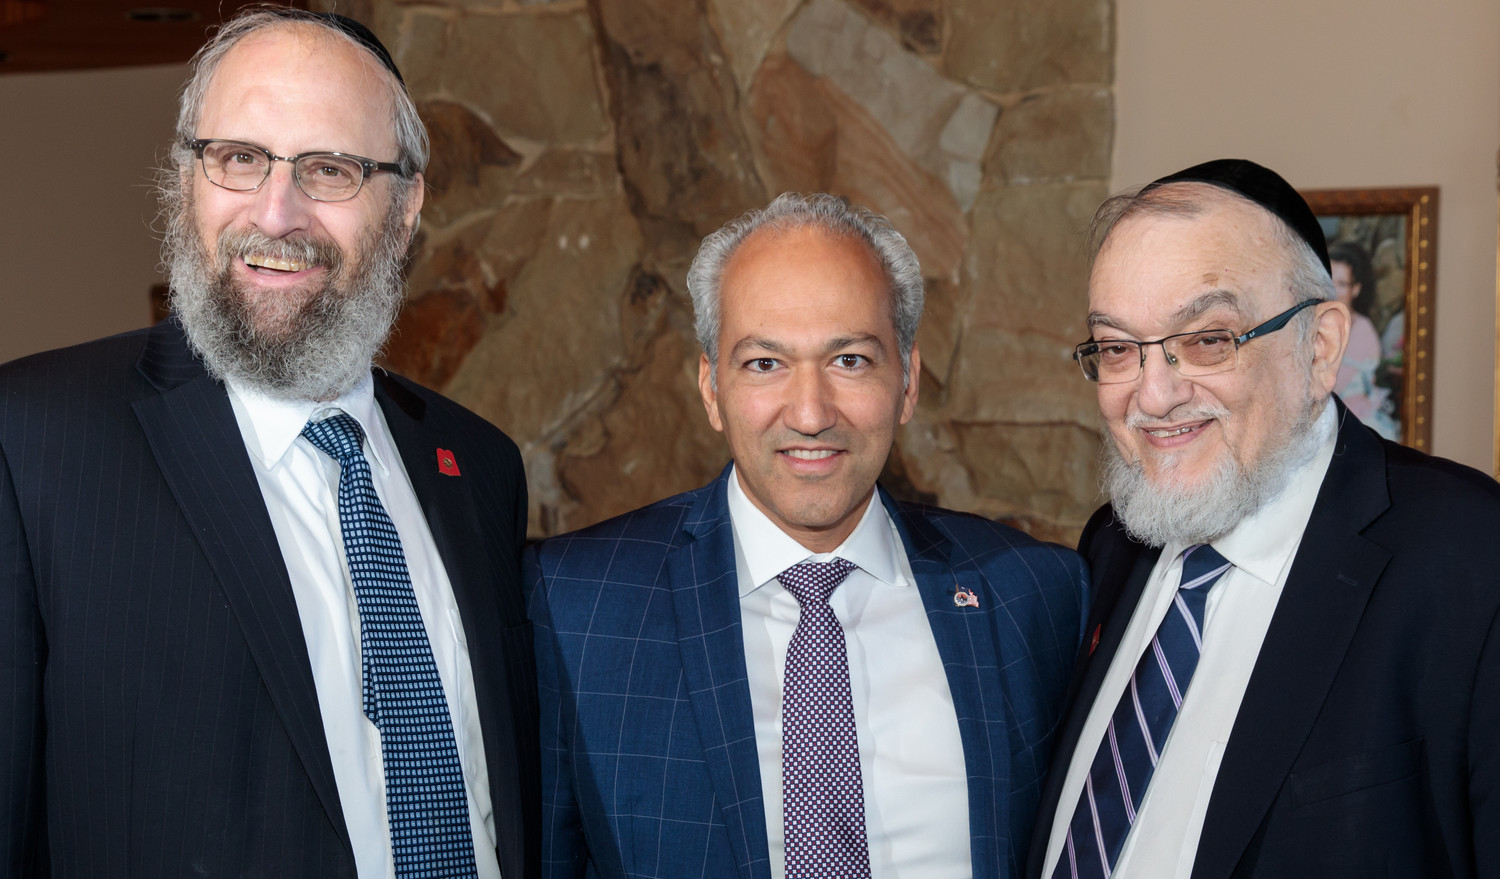 From left: Rabbi Yeruchim Silber, director of government relations for the Agudah; Dr. Pedram Bral, mayor of Great Neck; Rabbi Shmuel Lefkowitz, Agudah's vice president of community services.